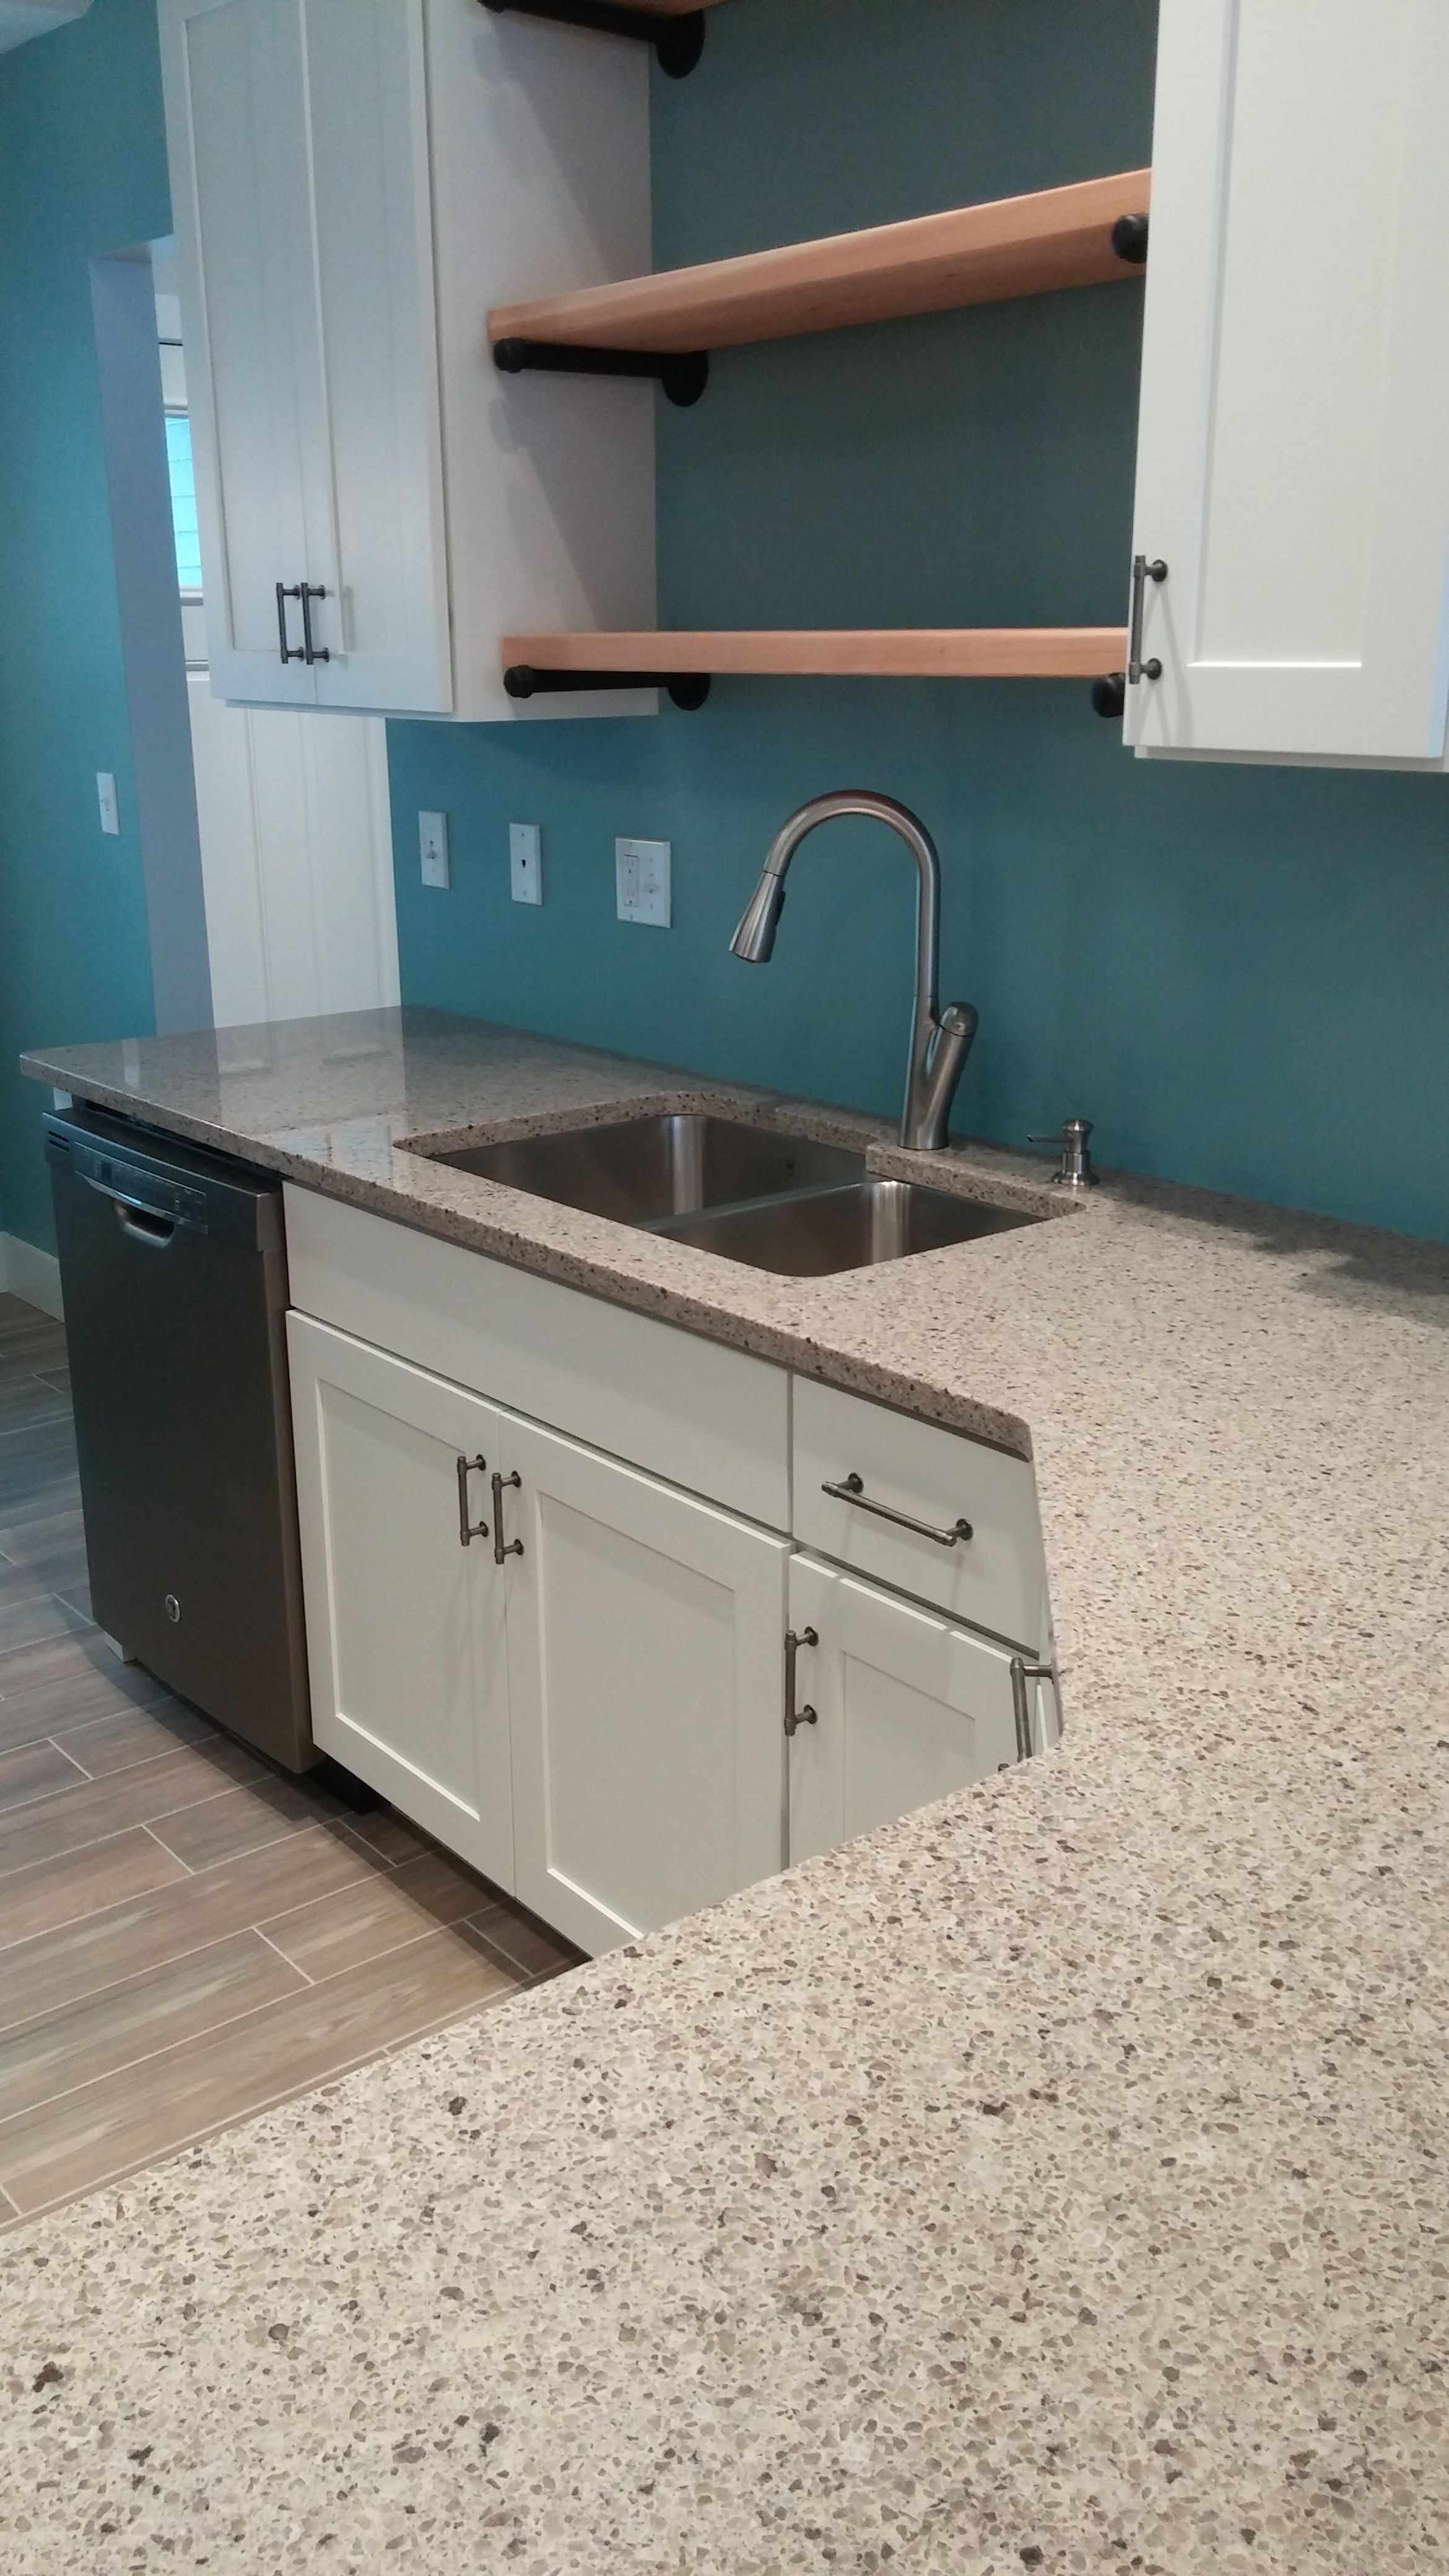 How Much Are Quartz Countertops Installed Lg Viatera Juniper Trail Quartz Counter We Installed In